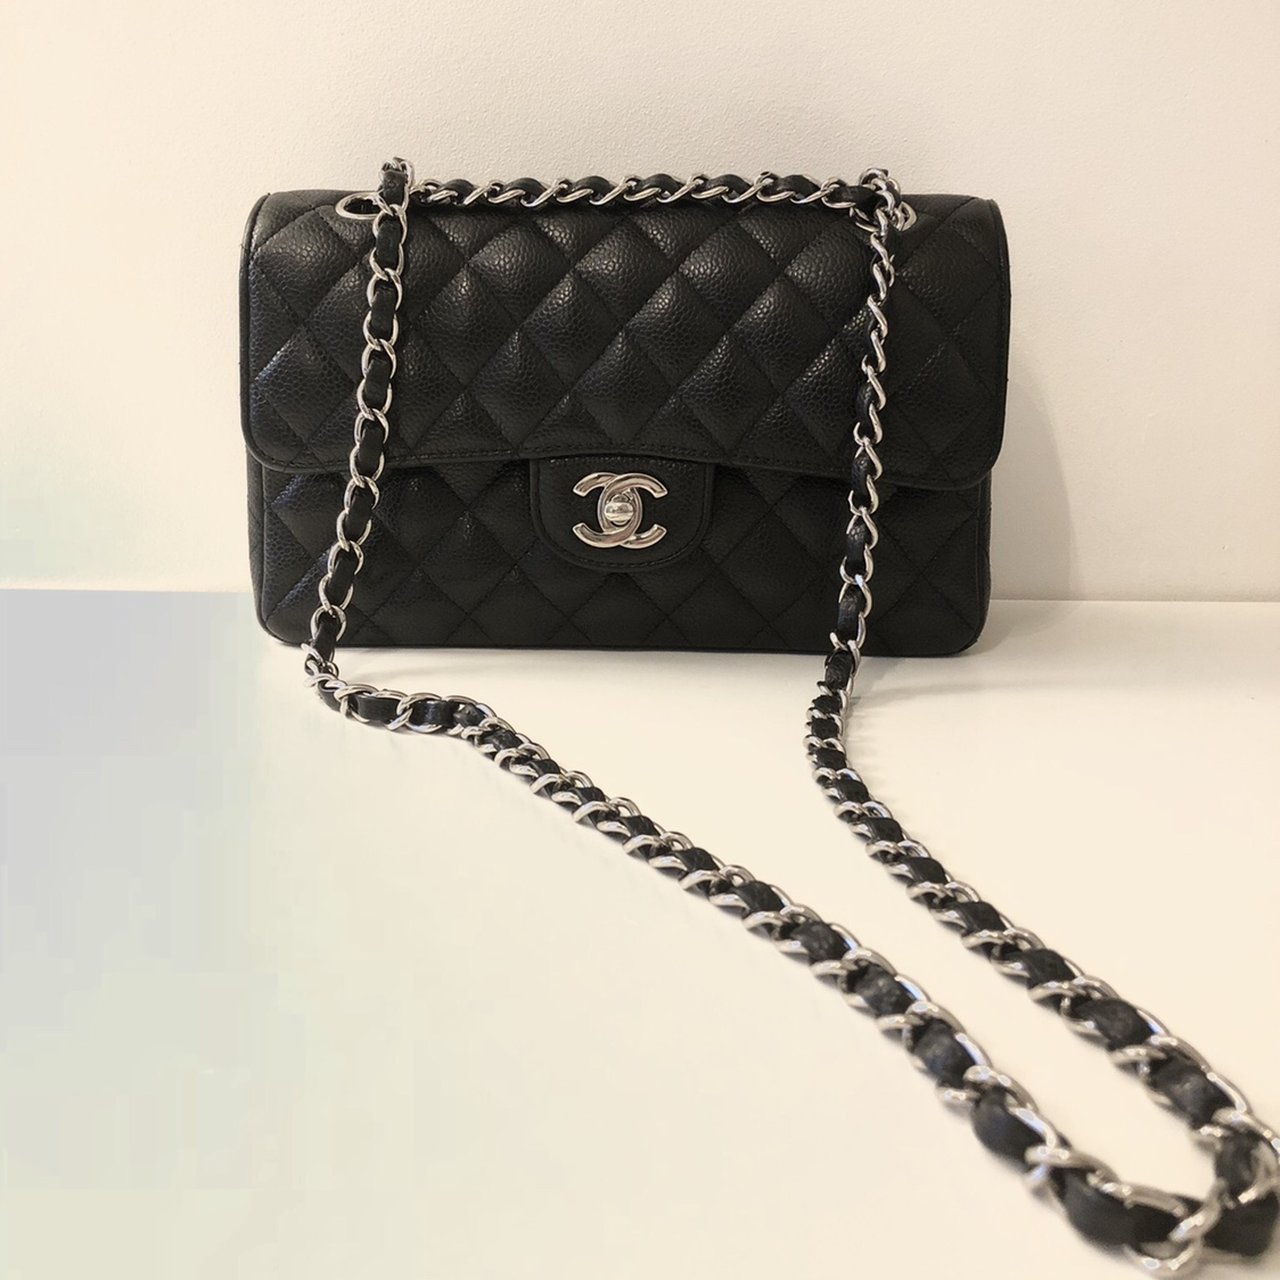 f36633d86d3447 @theluxurycollection. 7 months ago. London, United Kingdom. Chanel -  Classic Double Flap Bag - Small